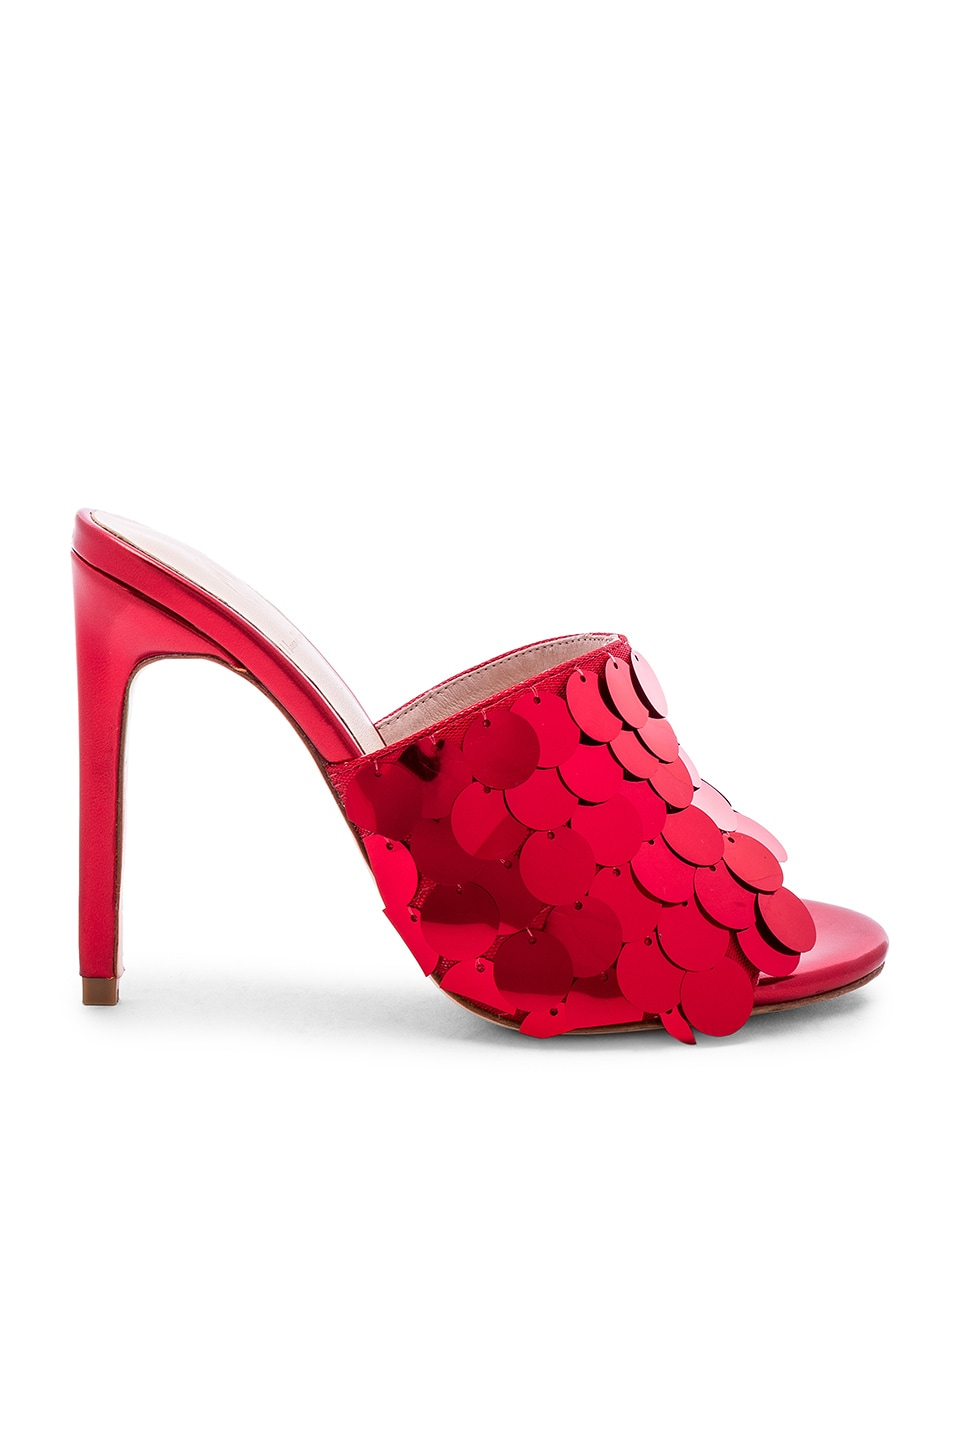 RAYE X House Of Harlow 1960 Kitty Heel in Red